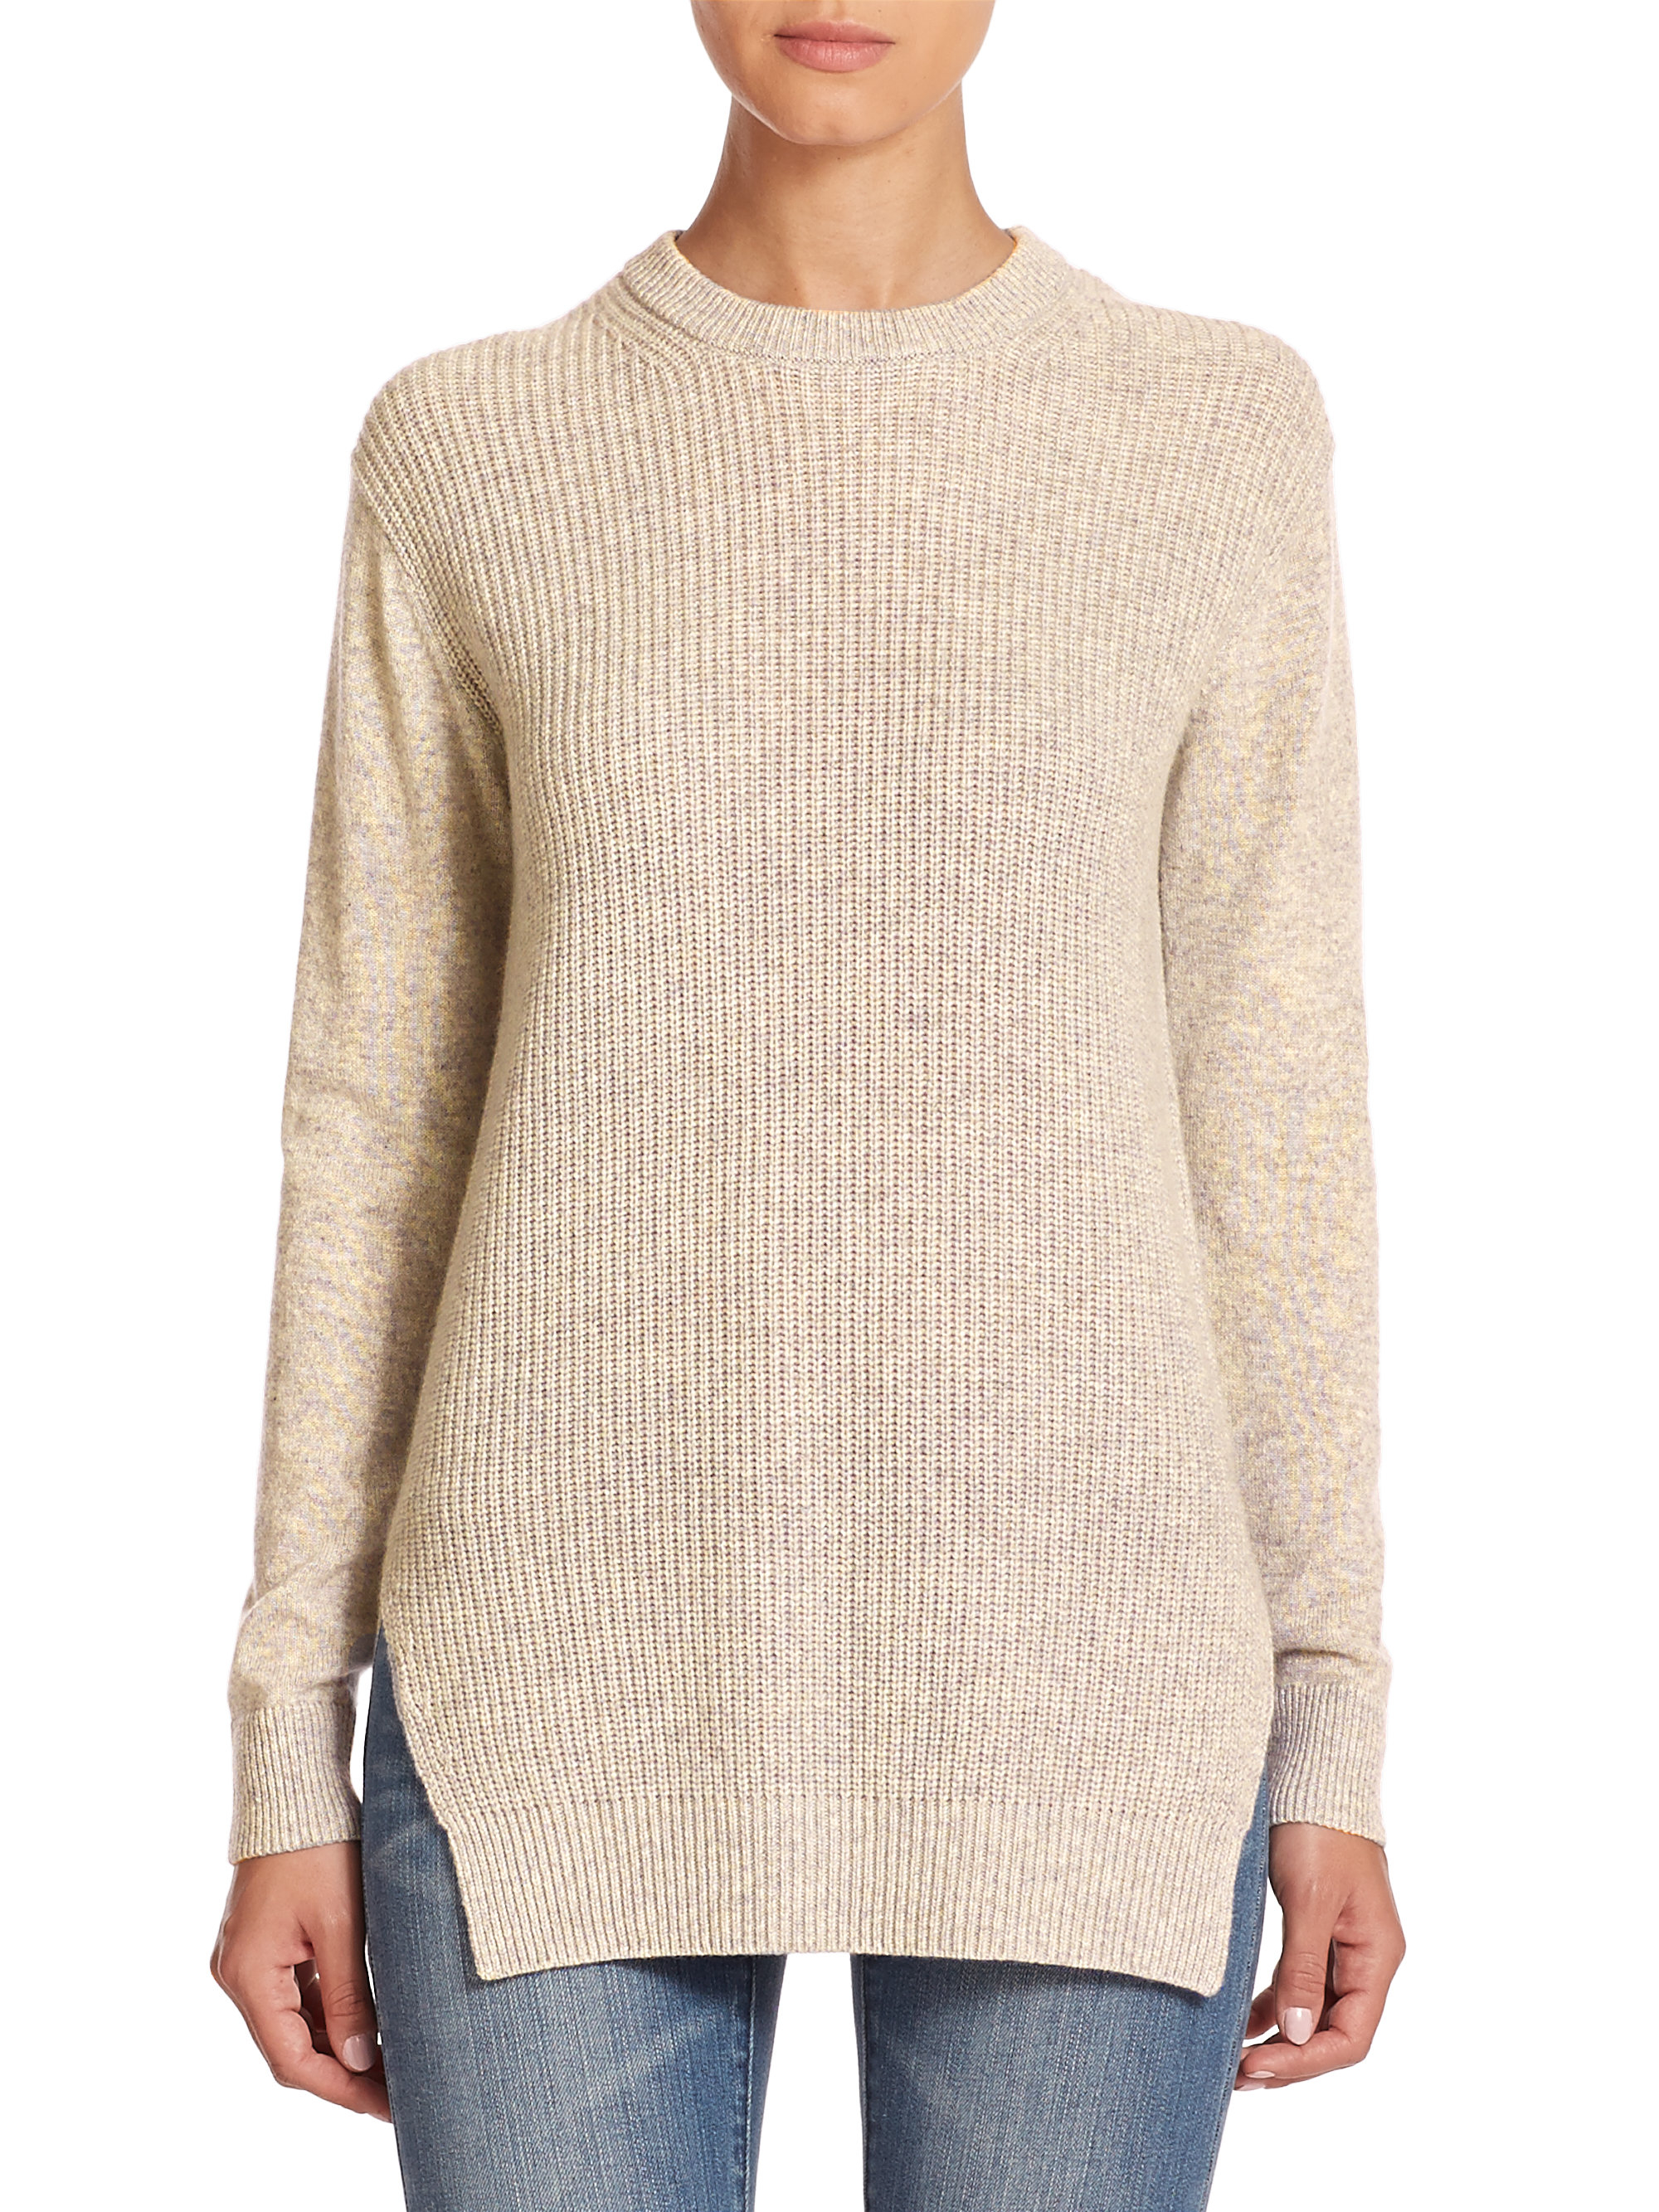 e3451bd7d MICHAEL Michael Kors Shaker-knit Cashmere Sweater in Natural - Lyst